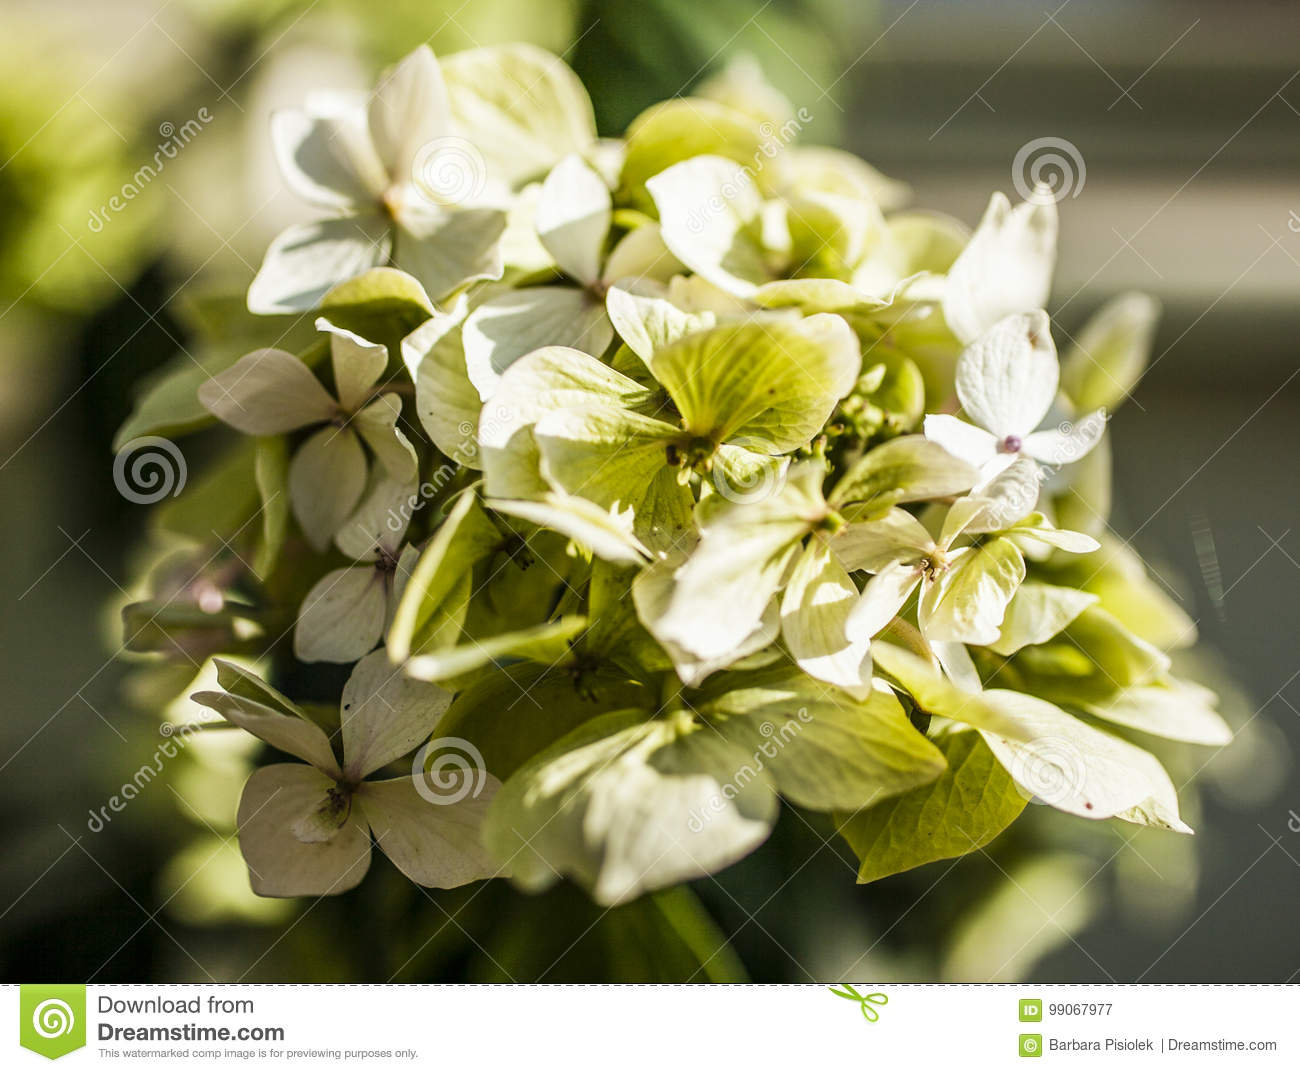 The garden a closeup of a bunch of pale yellow flowers stock download the garden a closeup of a bunch of pale yellow flowers stock image mightylinksfo